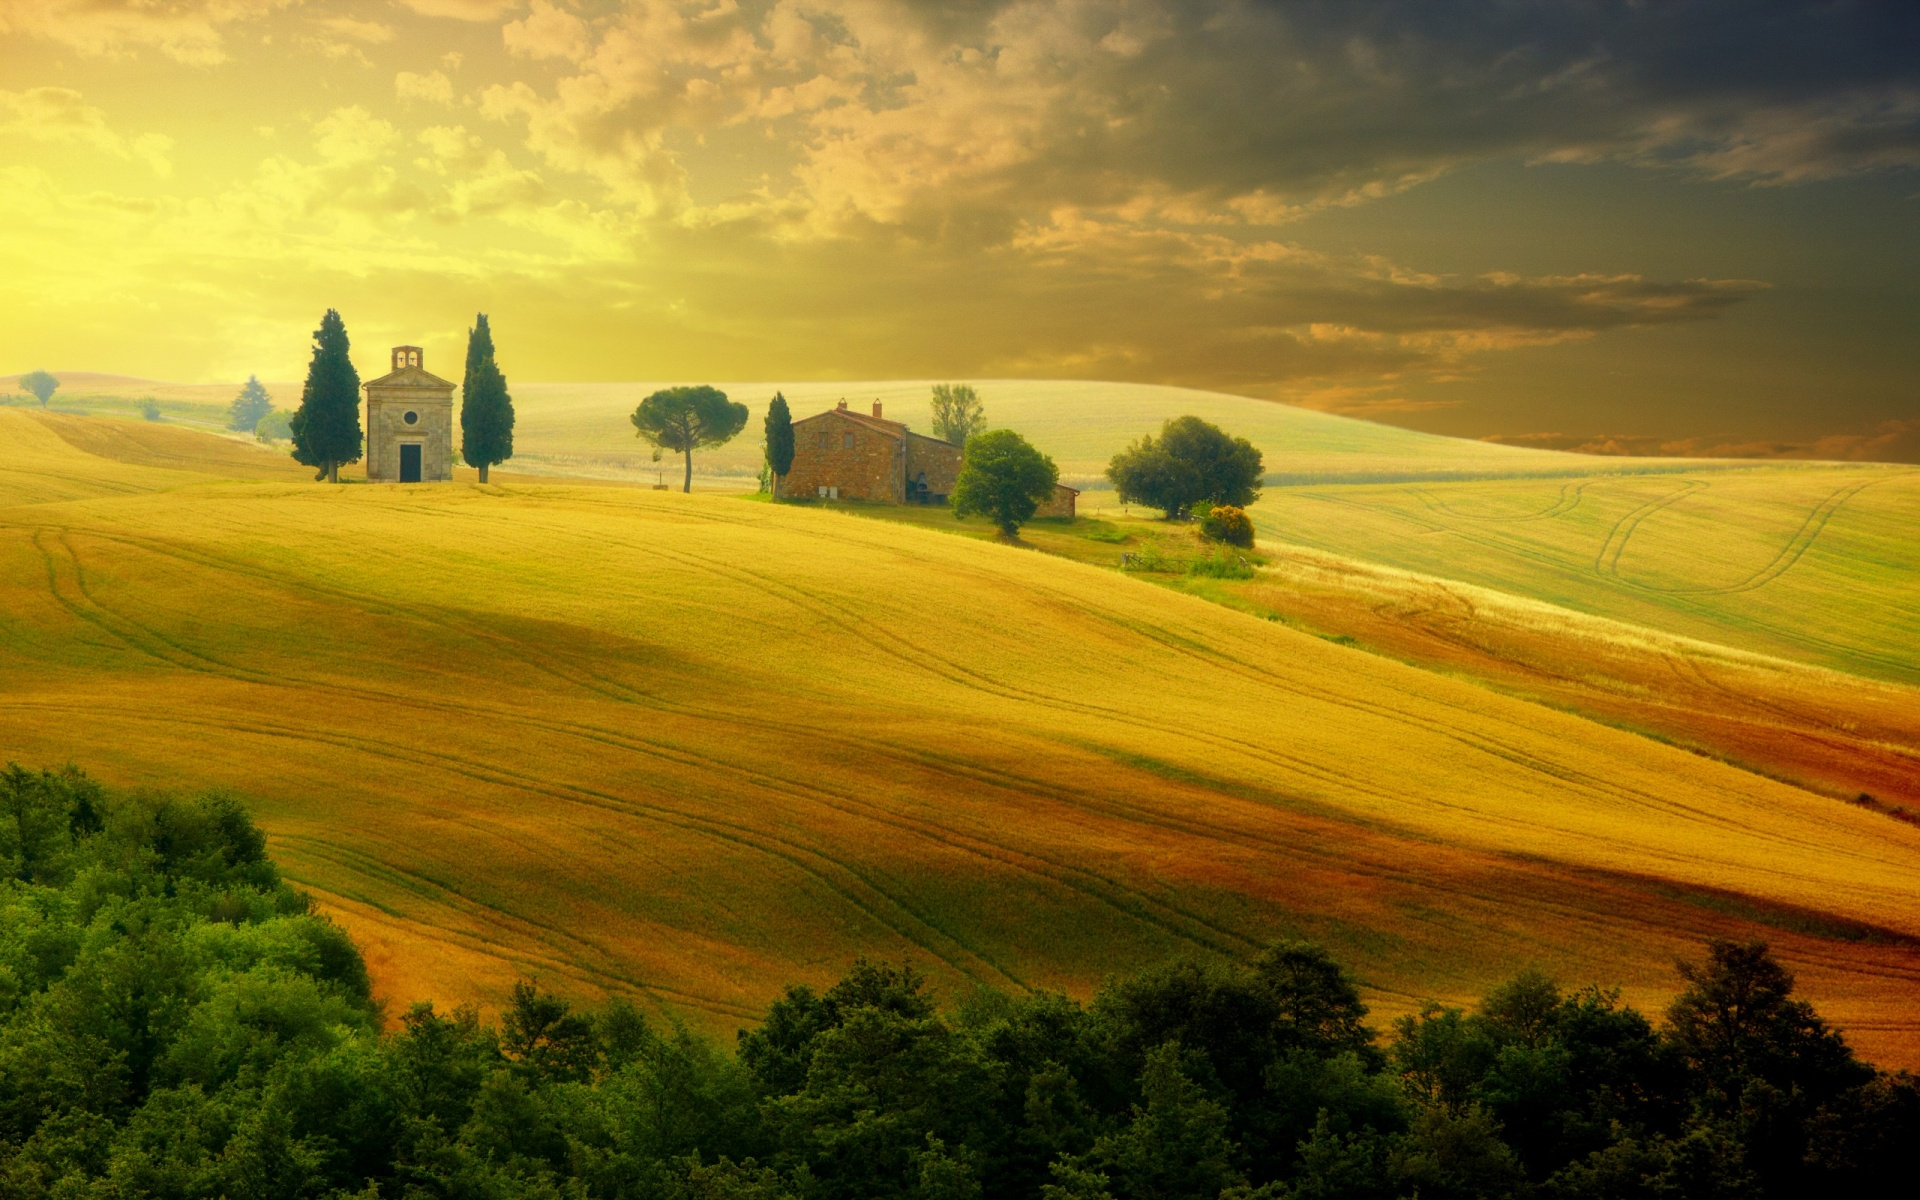 Landscape In Tuscany At Sunset In Summer Wallpapers   1920x1200 1920x1200